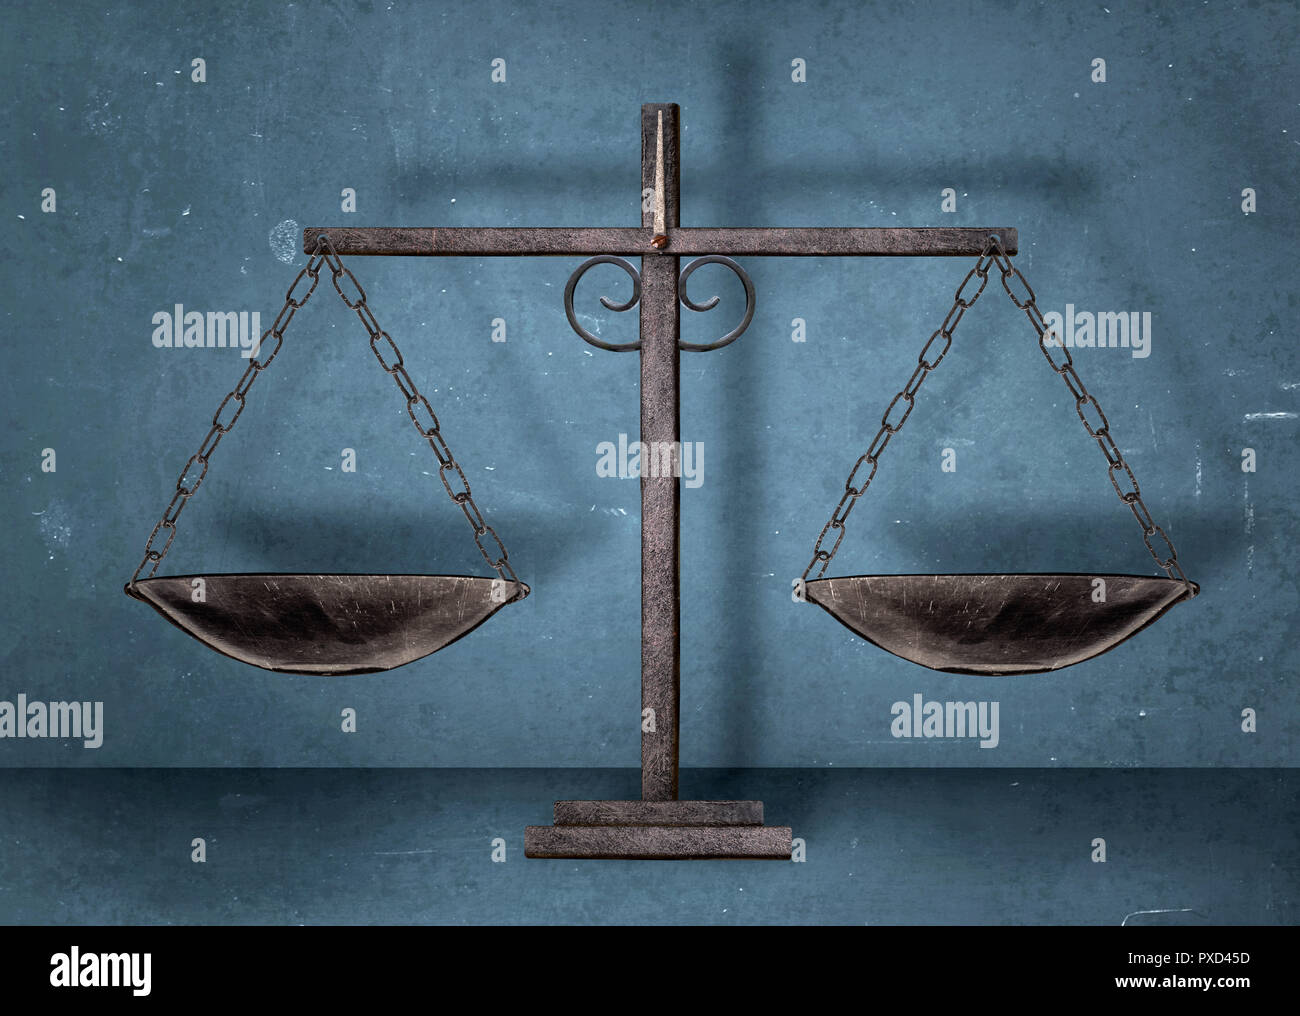 balance bar pharmacist compensation equity court law - Stock Image